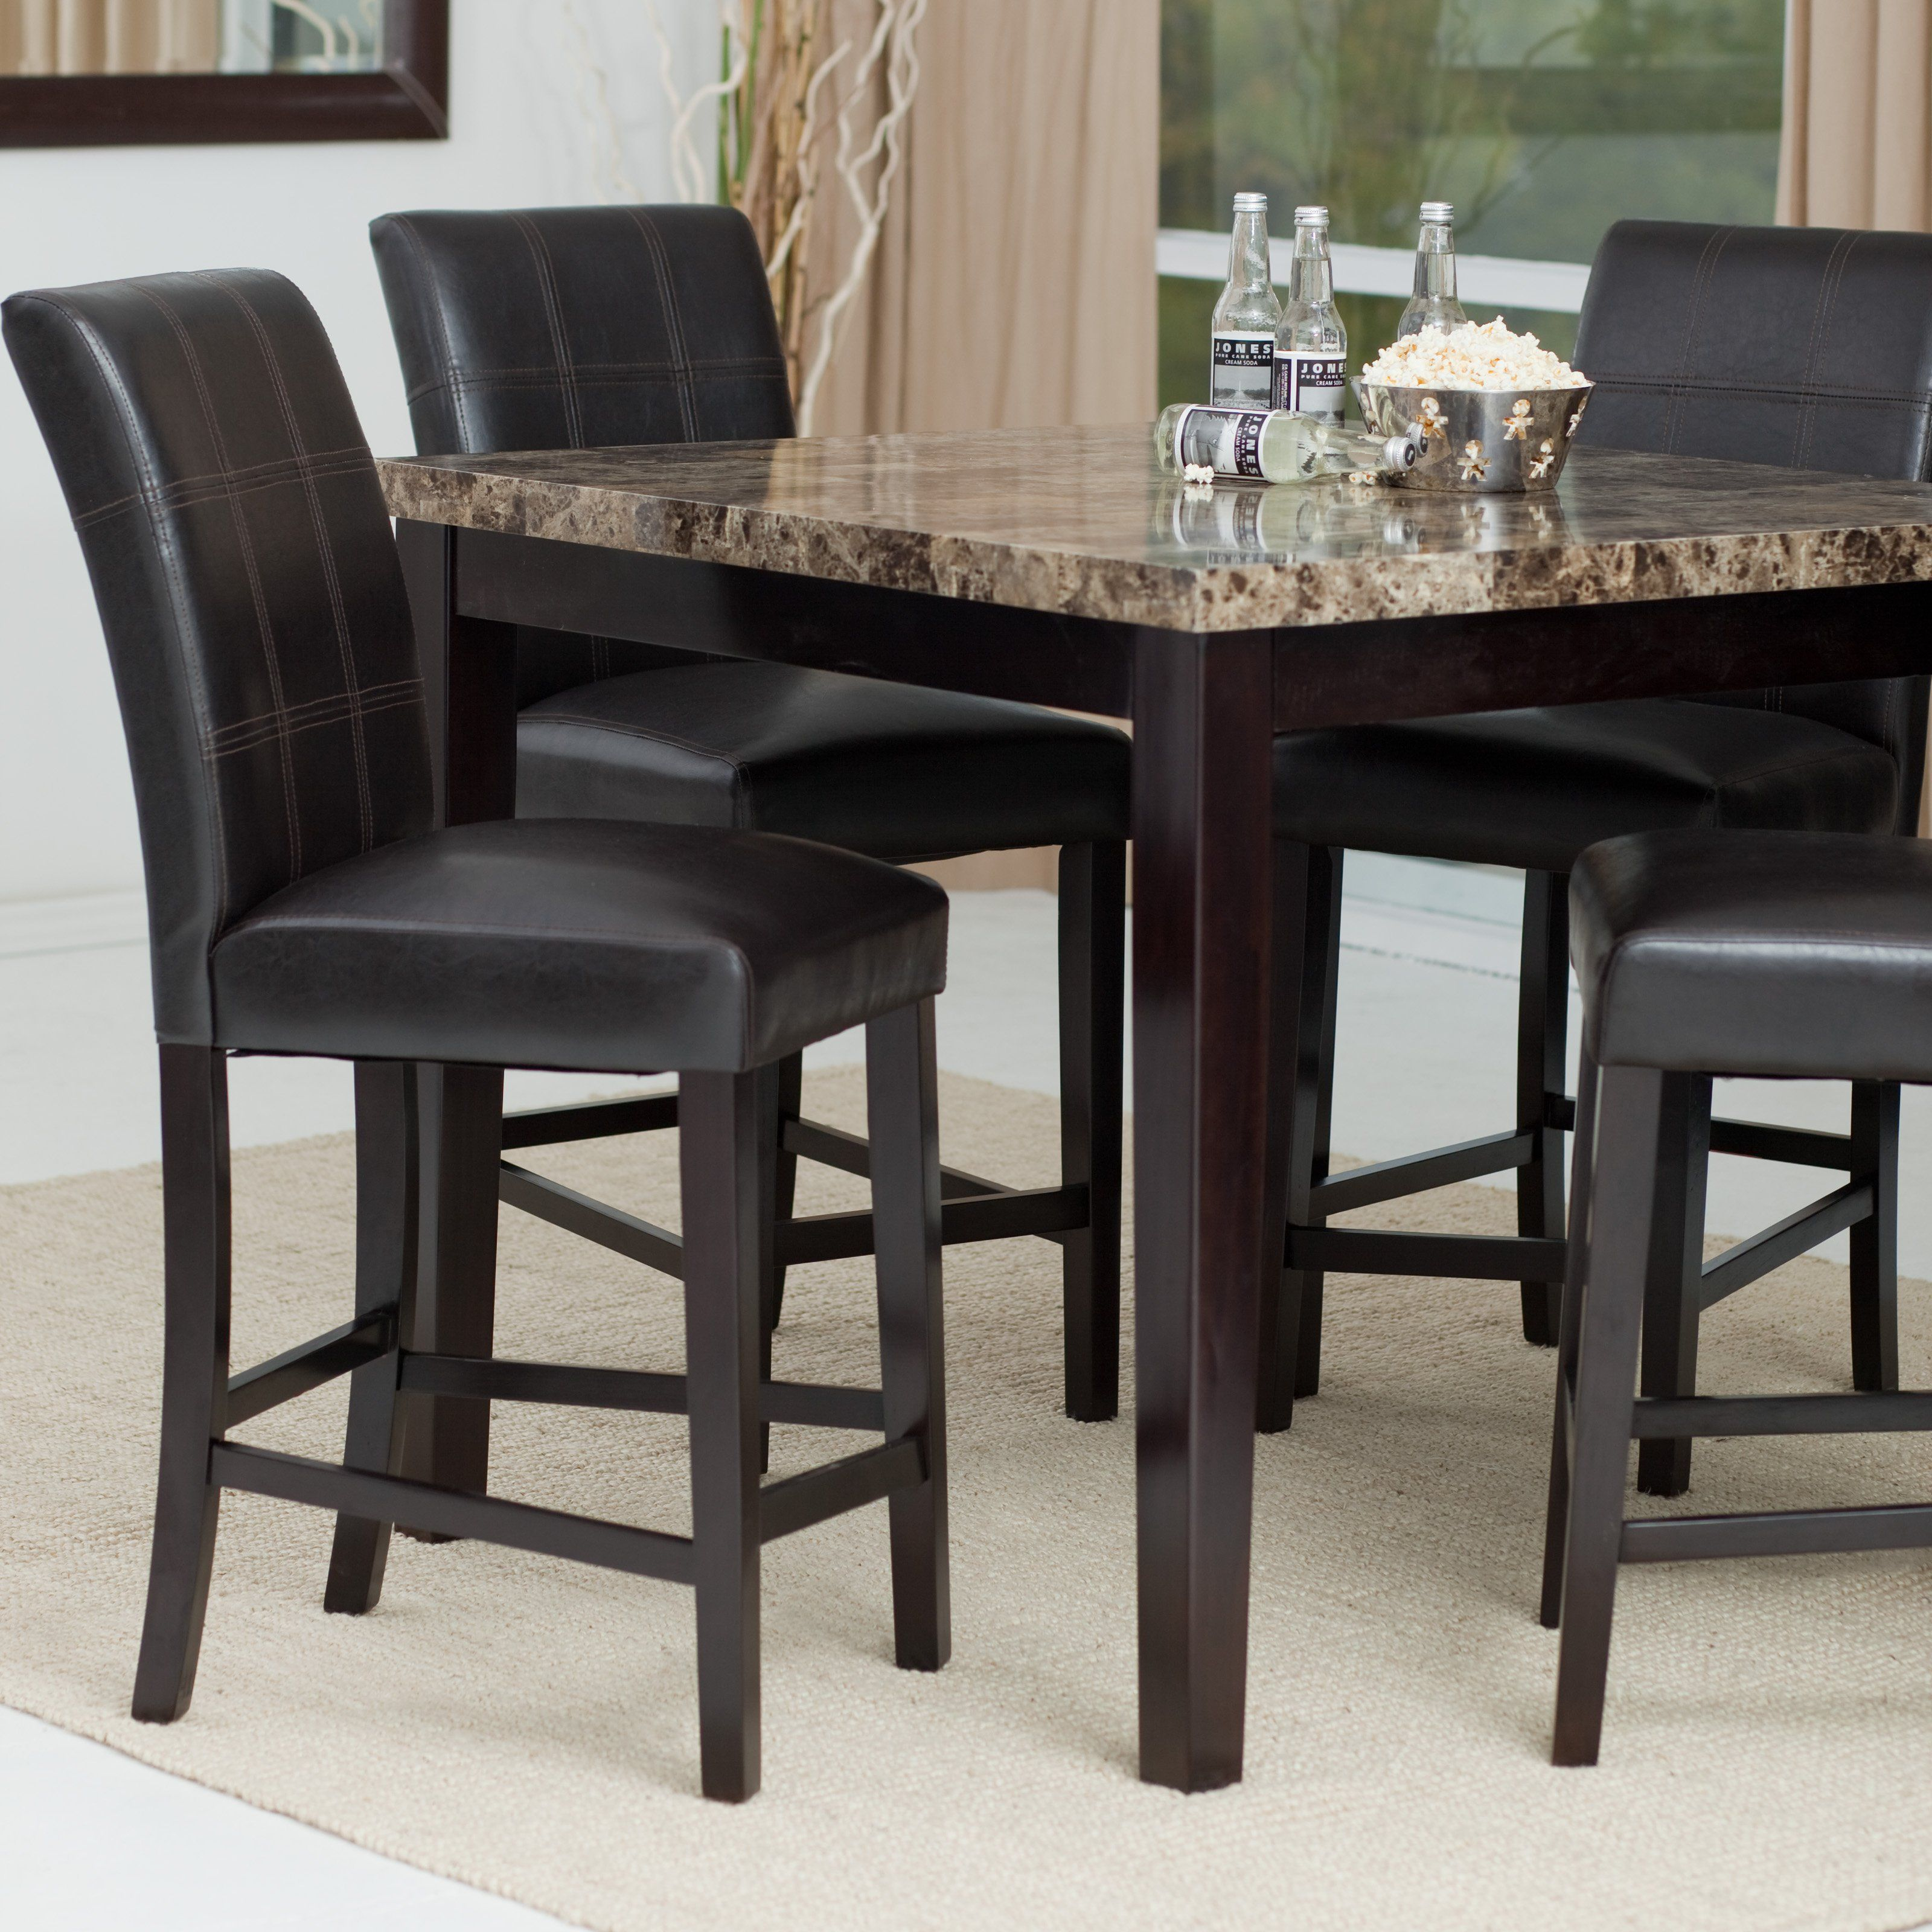 Palazzo 5-piece Counter Height Dining Set - 429.98 Home